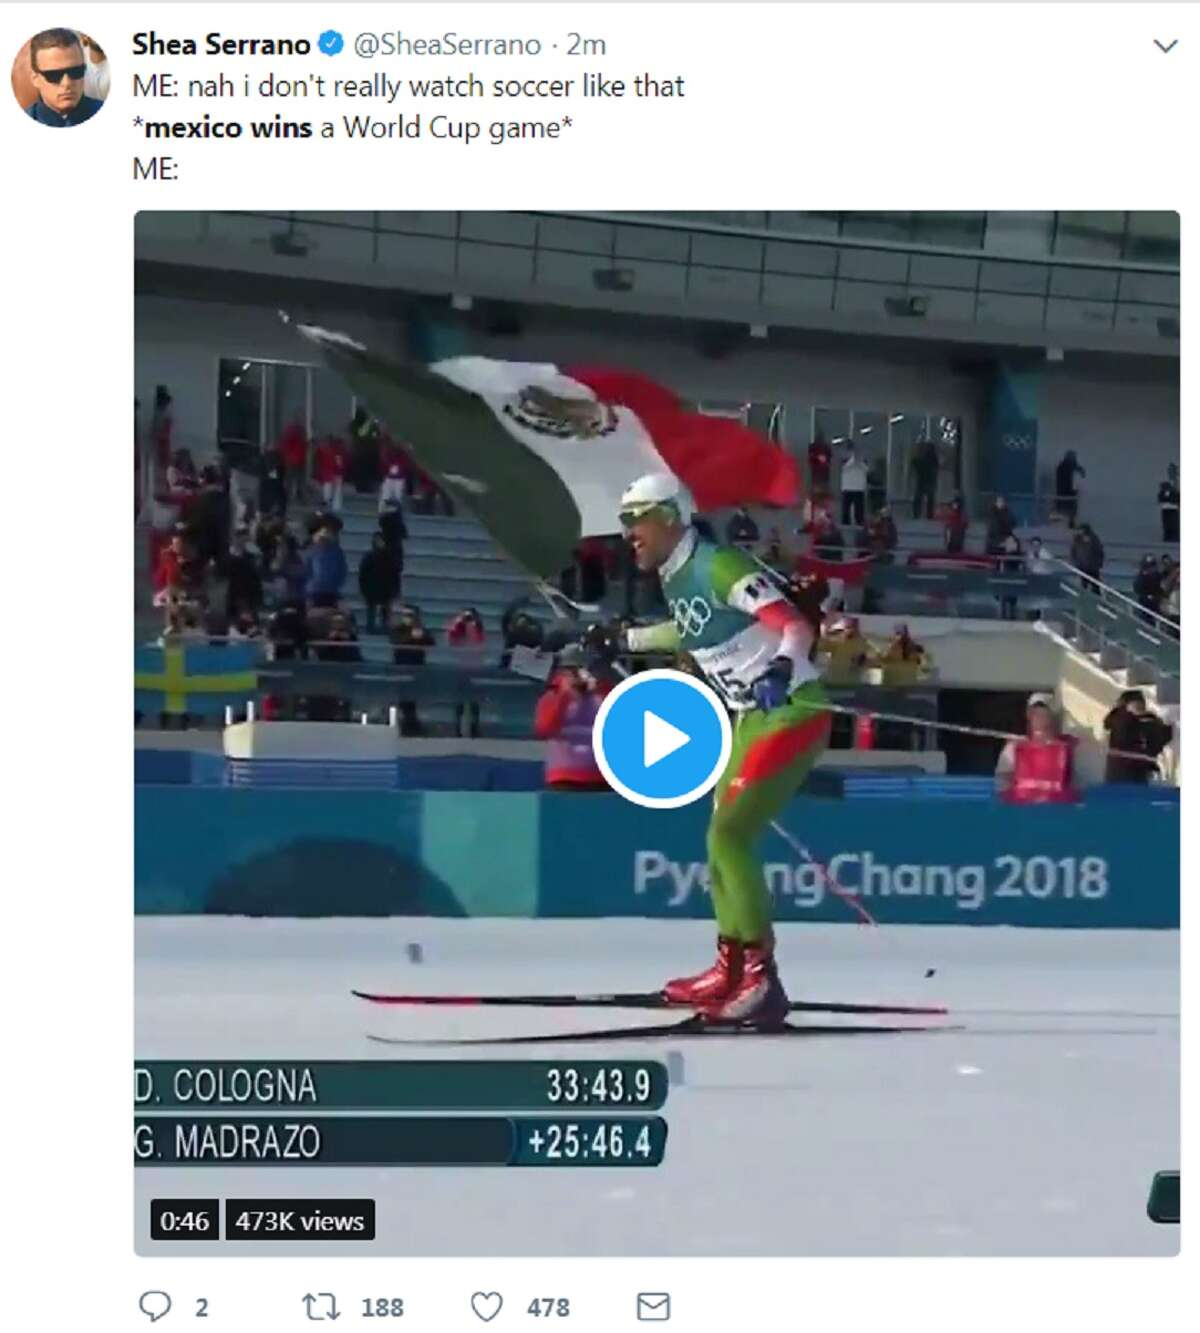 Mexican fans went nuts on Twitter following Mexico's huge upset win over No. 1 ranked Germany in their World Cup opener Sunday, June 17, 2018.